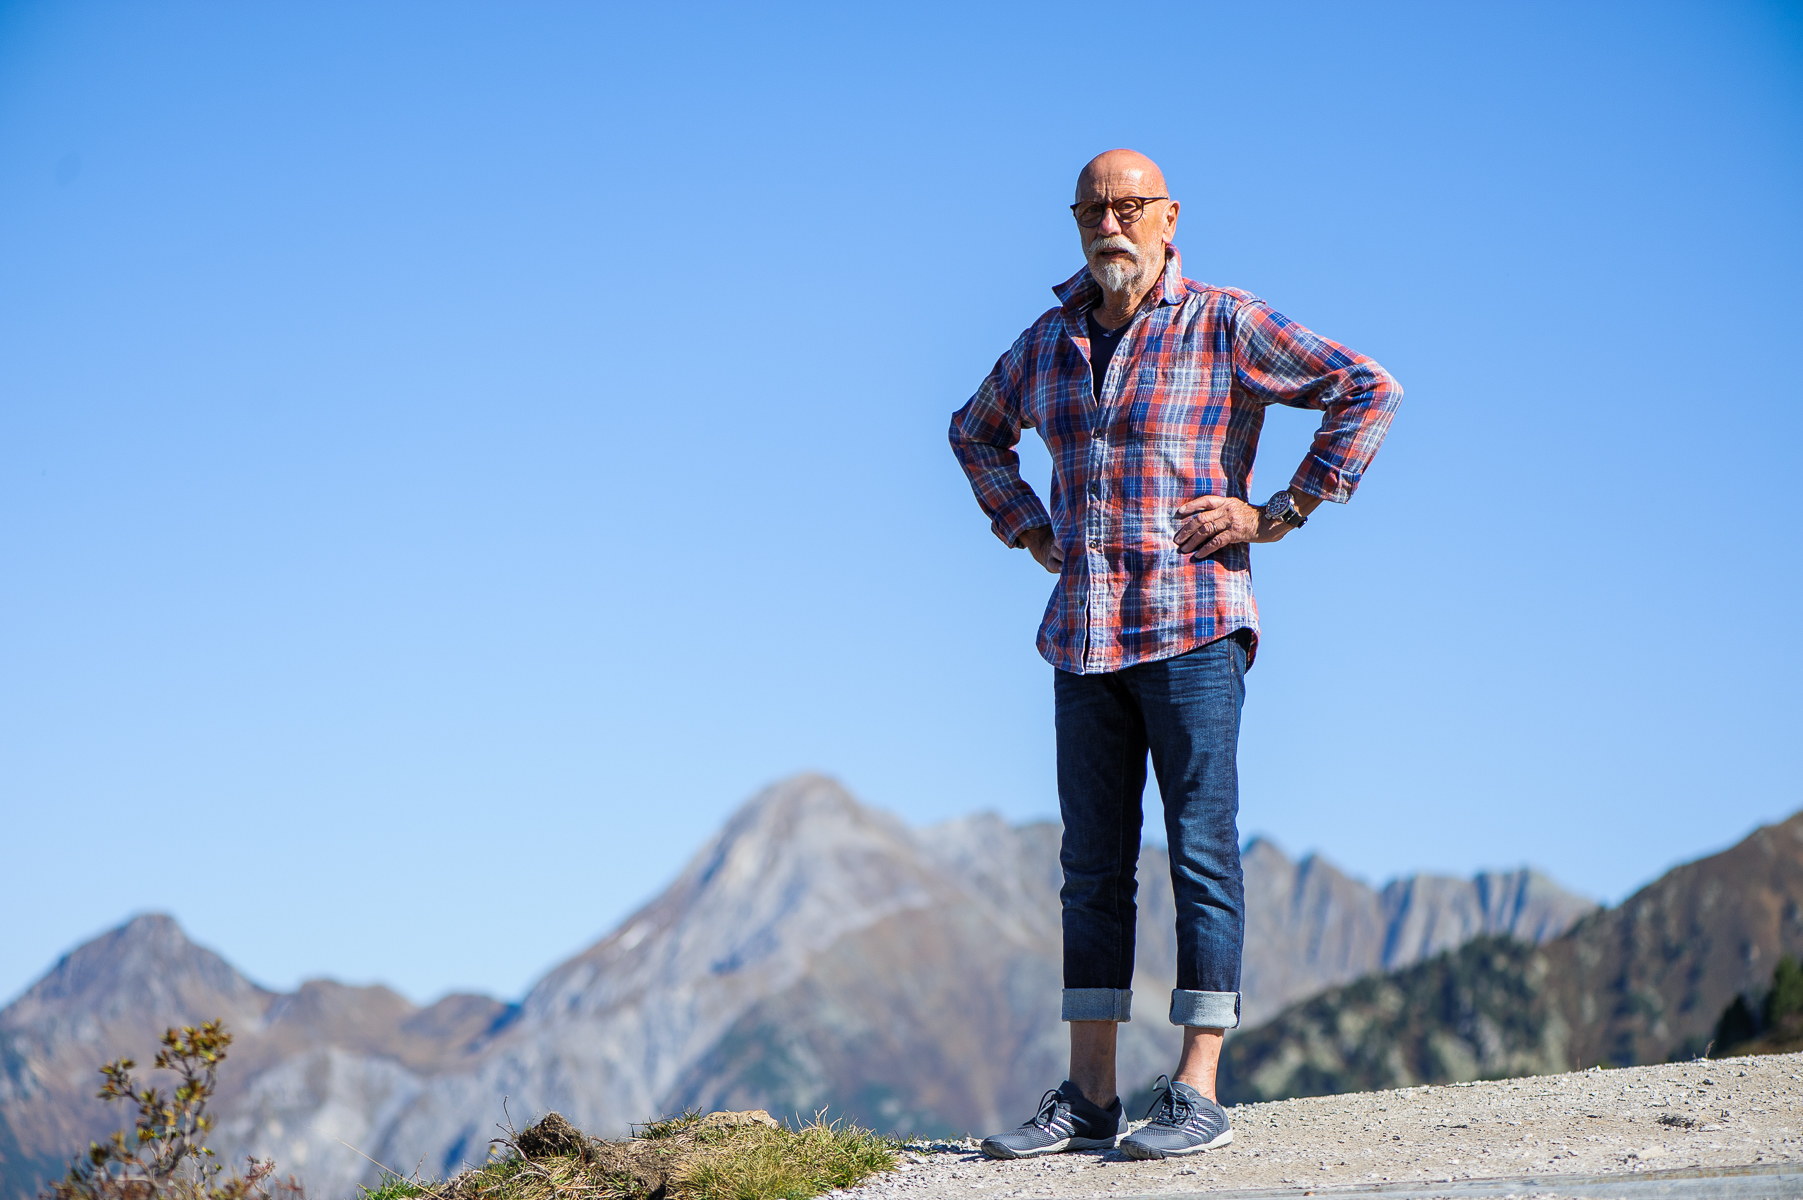 Dad waits for mom to catch up on the hike up the Ahorn mountain. Mayrhofen, Austria, October 10, 2018.